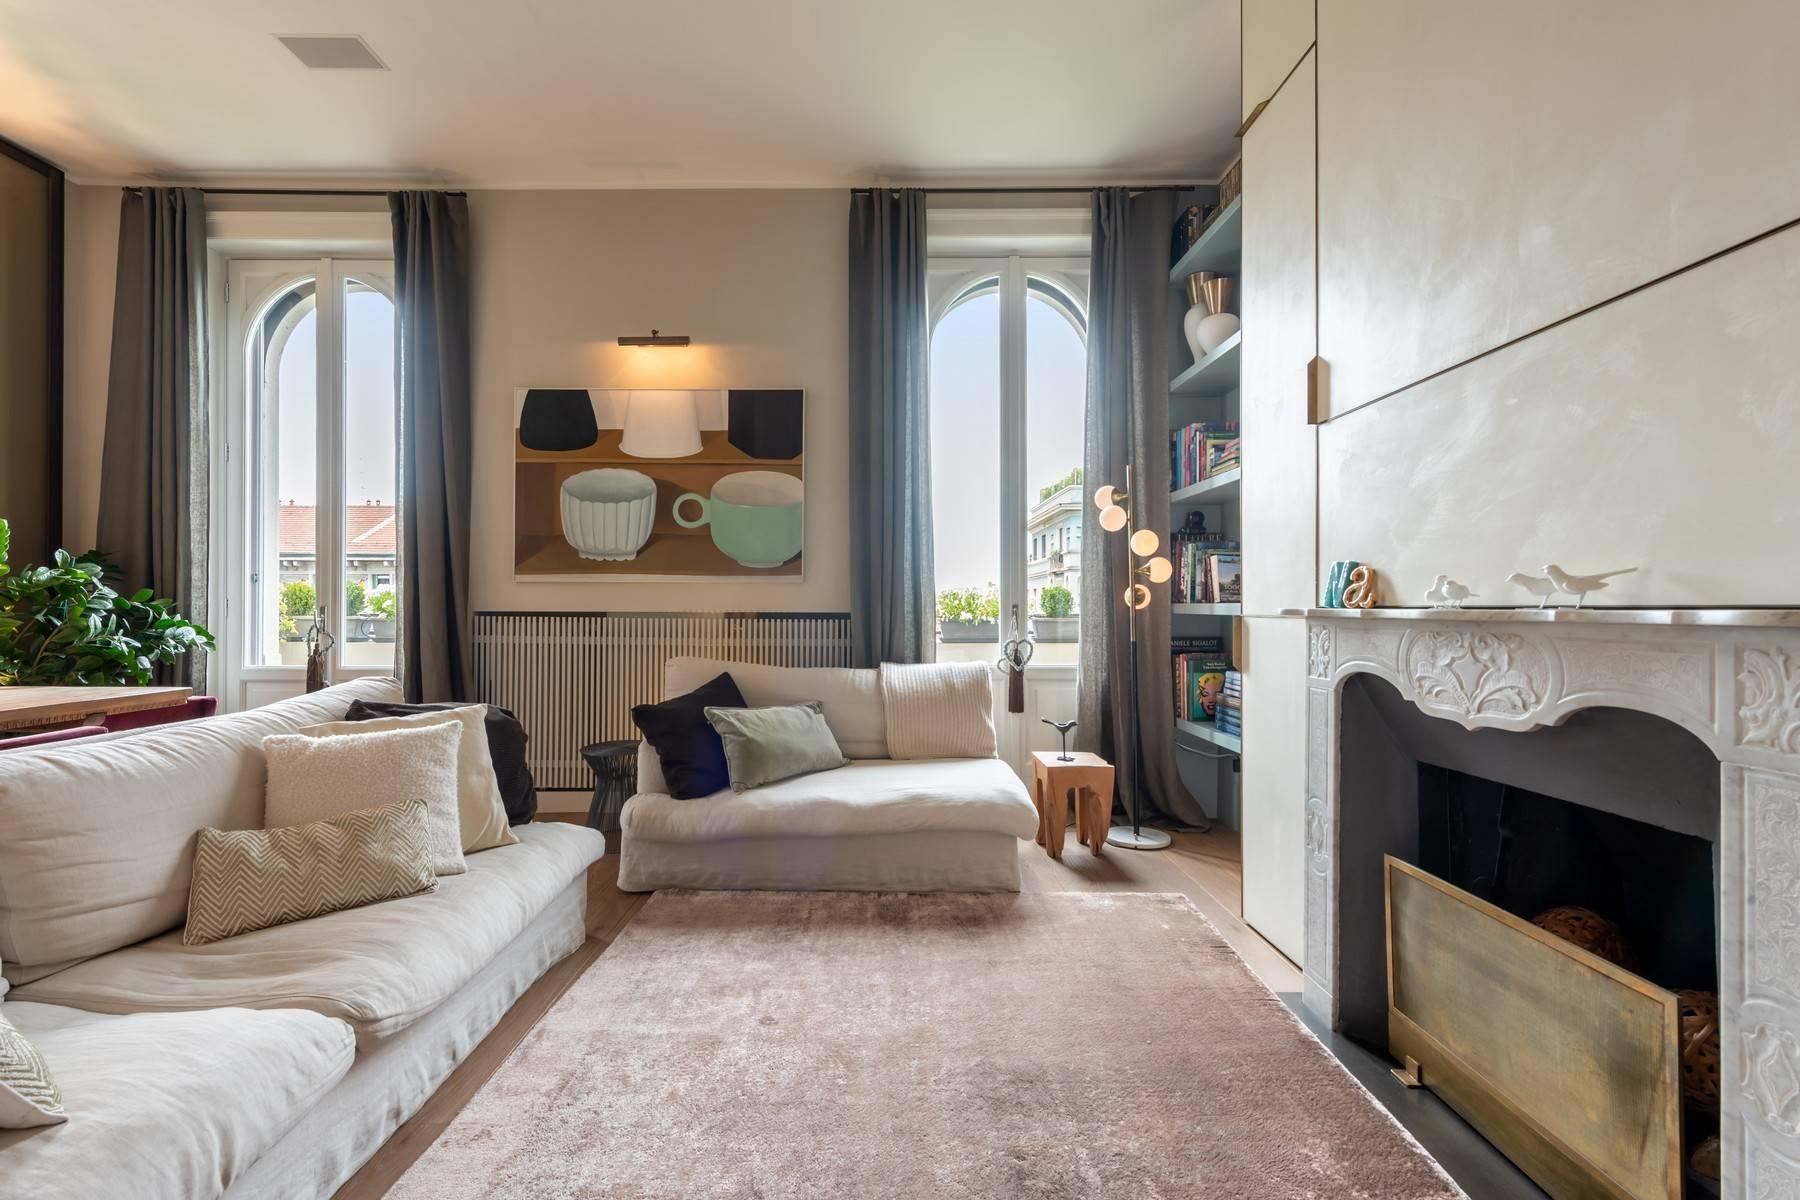 Beautiful penthouse perfectly renovated with great taste - 4